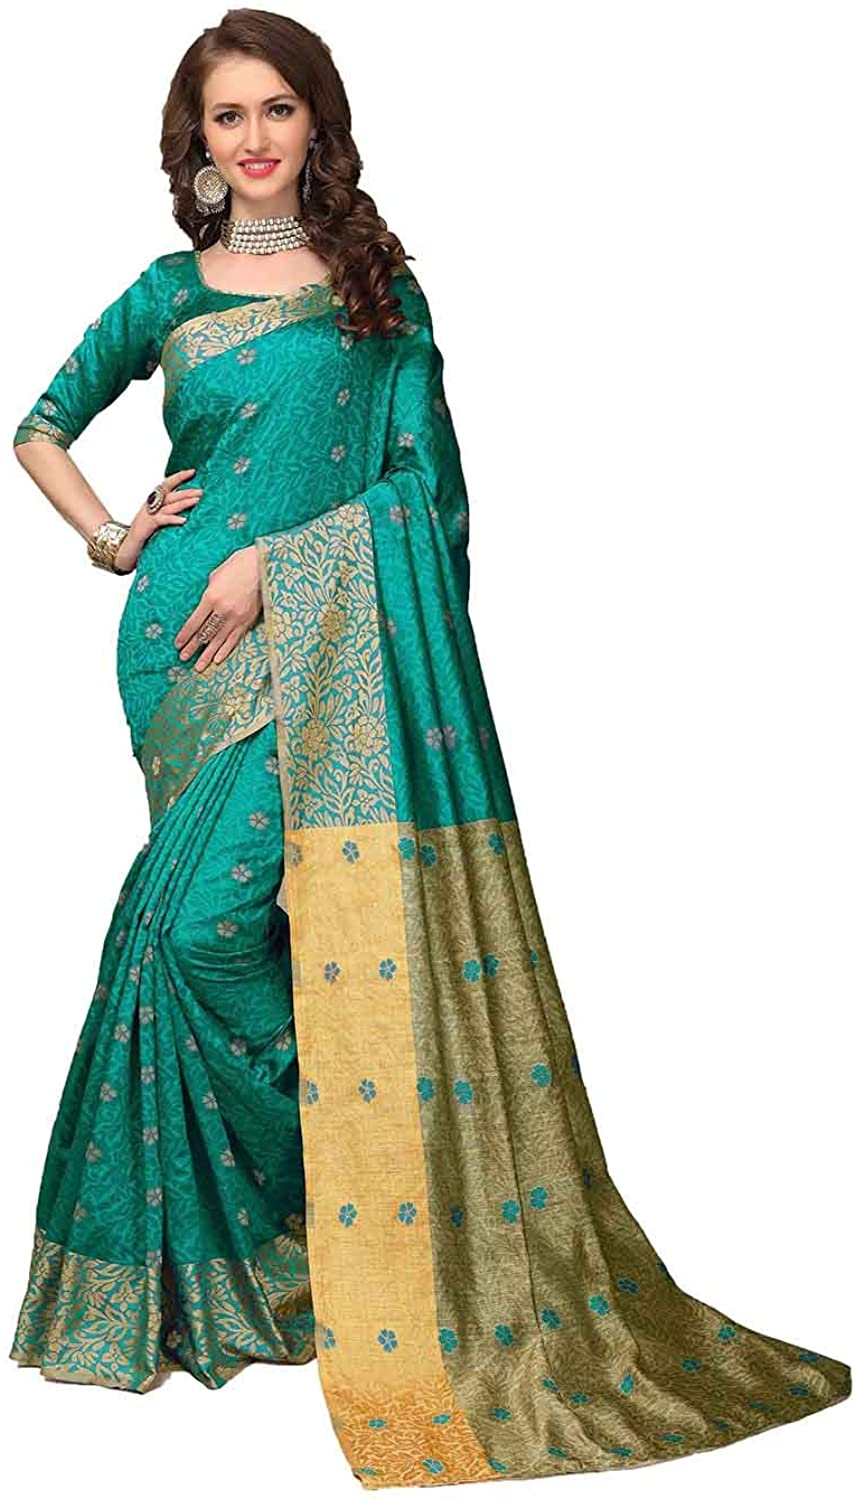 Saree for Women Bollywood Wedding Designer Teal Sari with Unstitched Blouse.